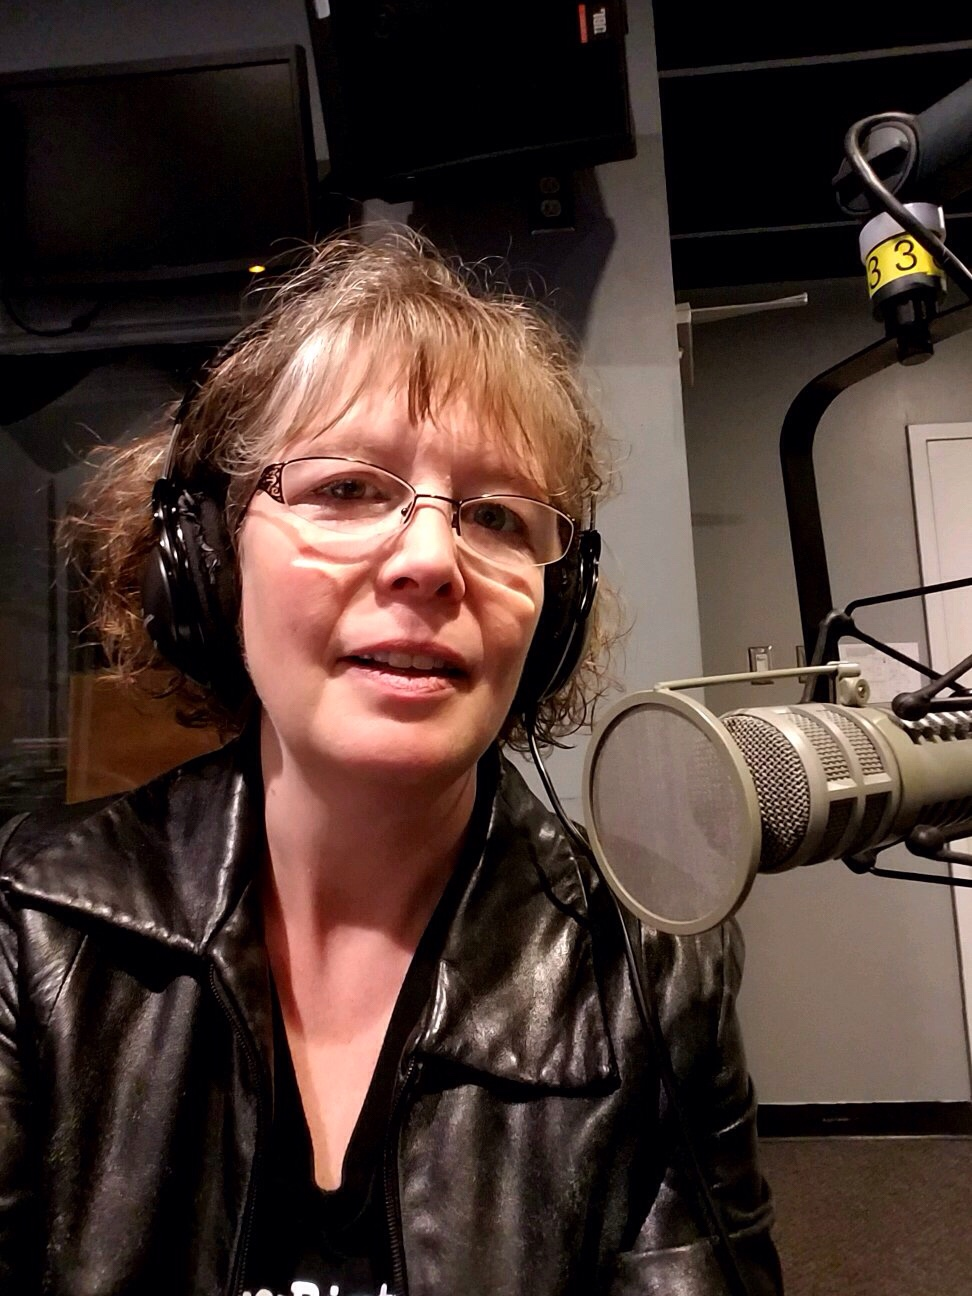 Cheryl Krichbaum on the radio